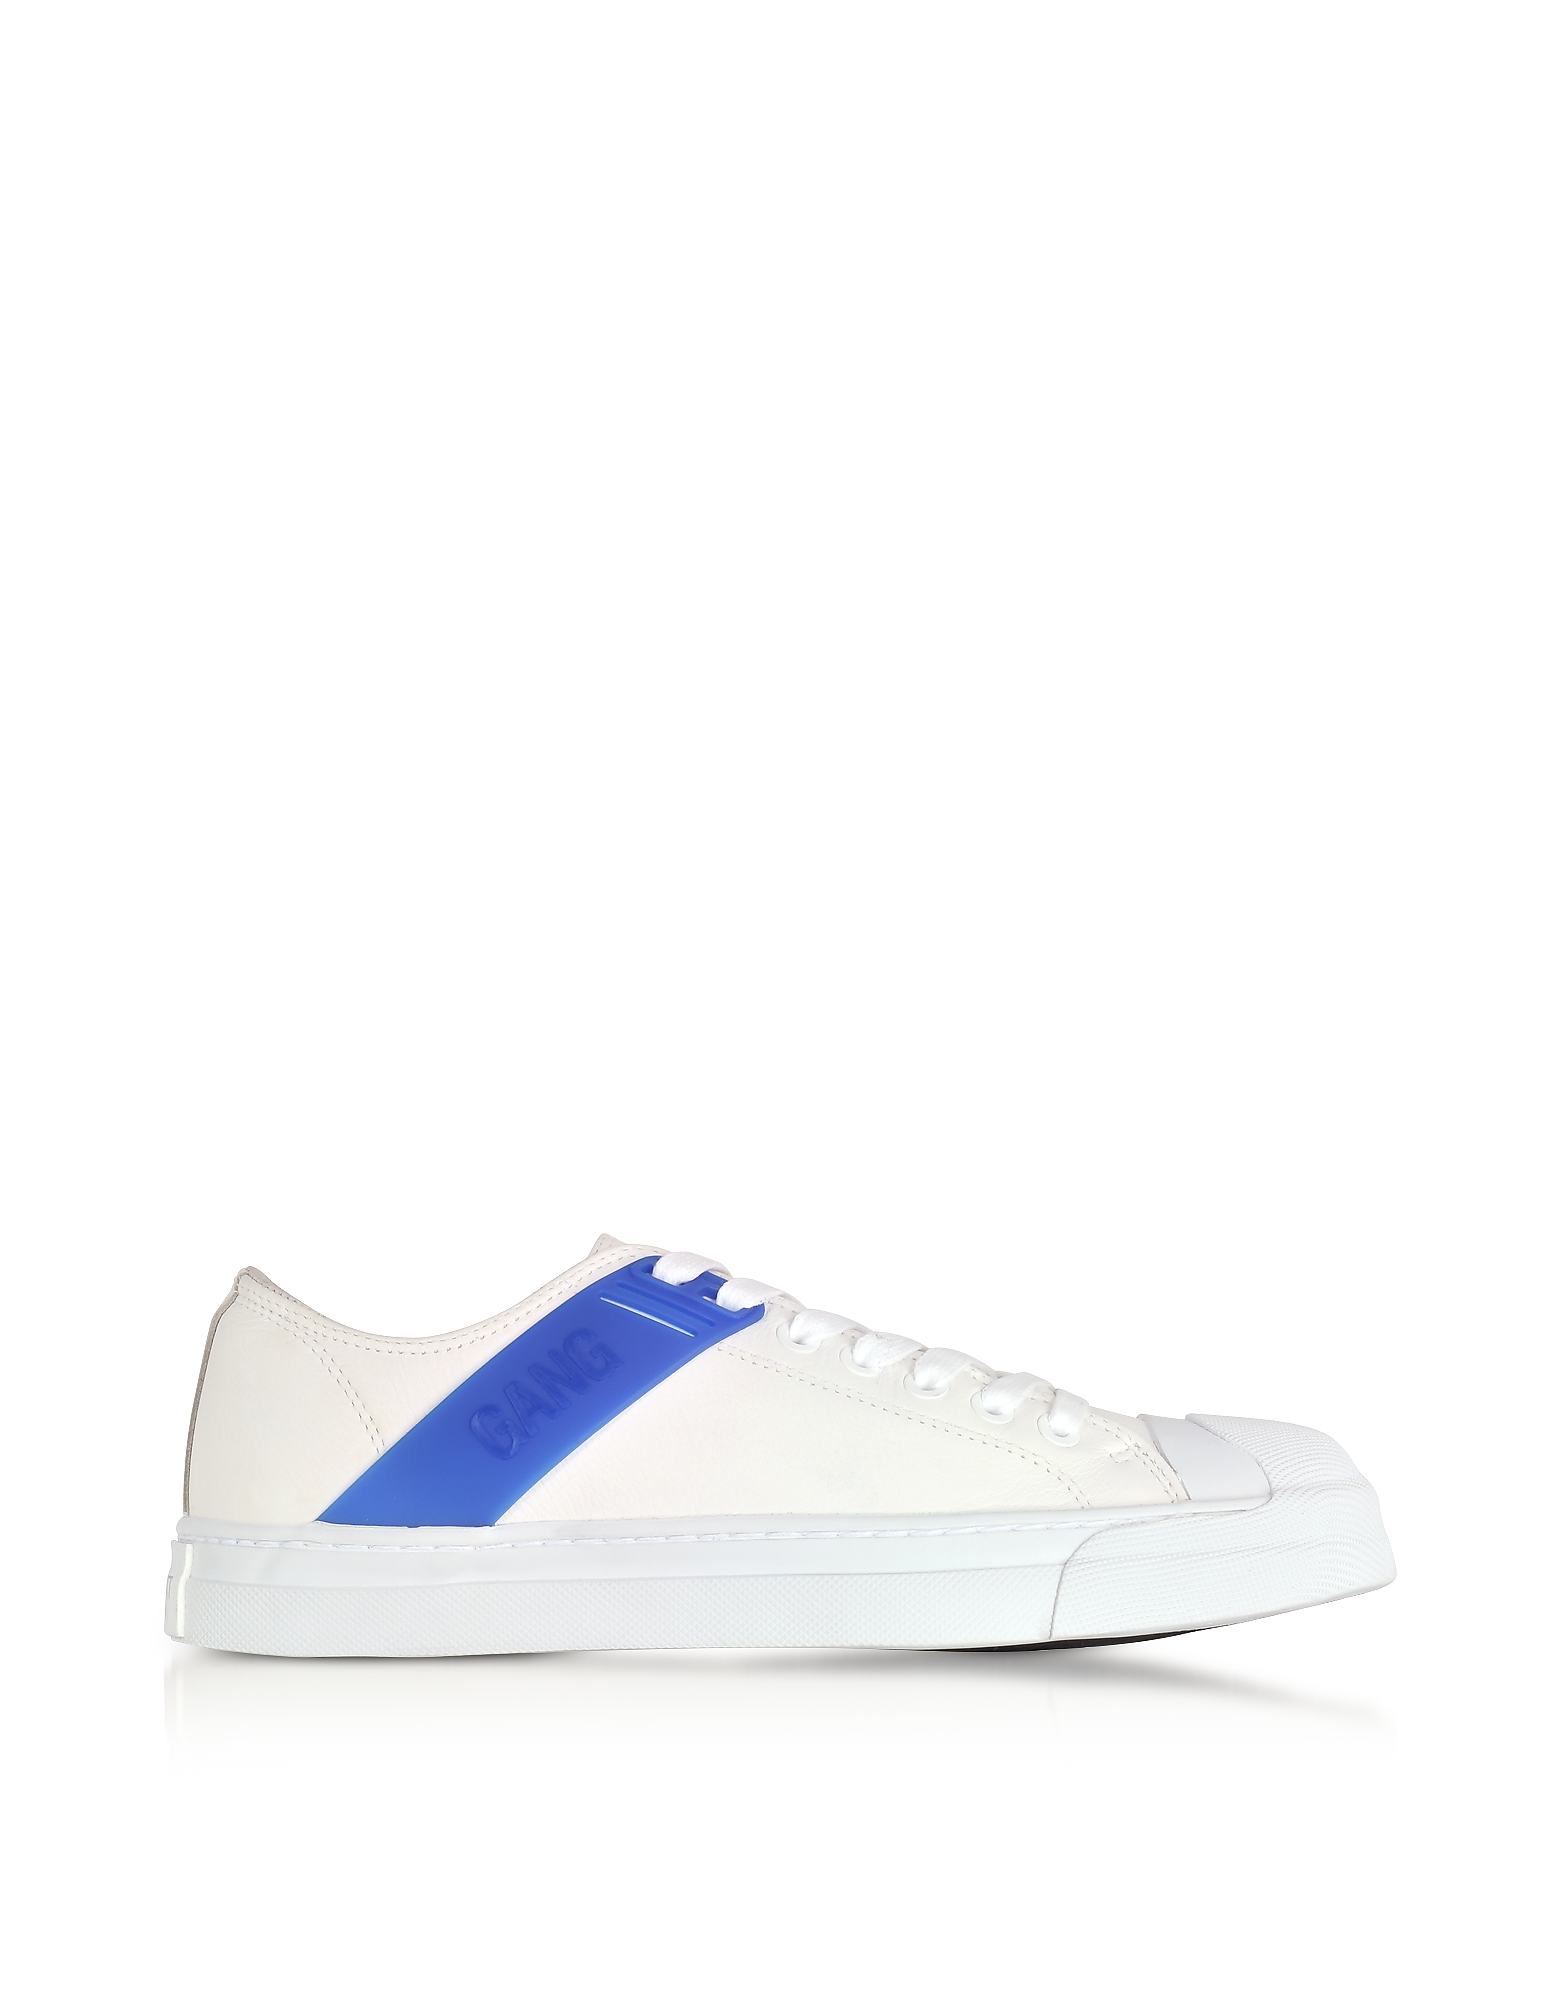 Neil Barrett Shoes, Gang Trainer White Leather and Cobalt Blue Rubber Sneakers